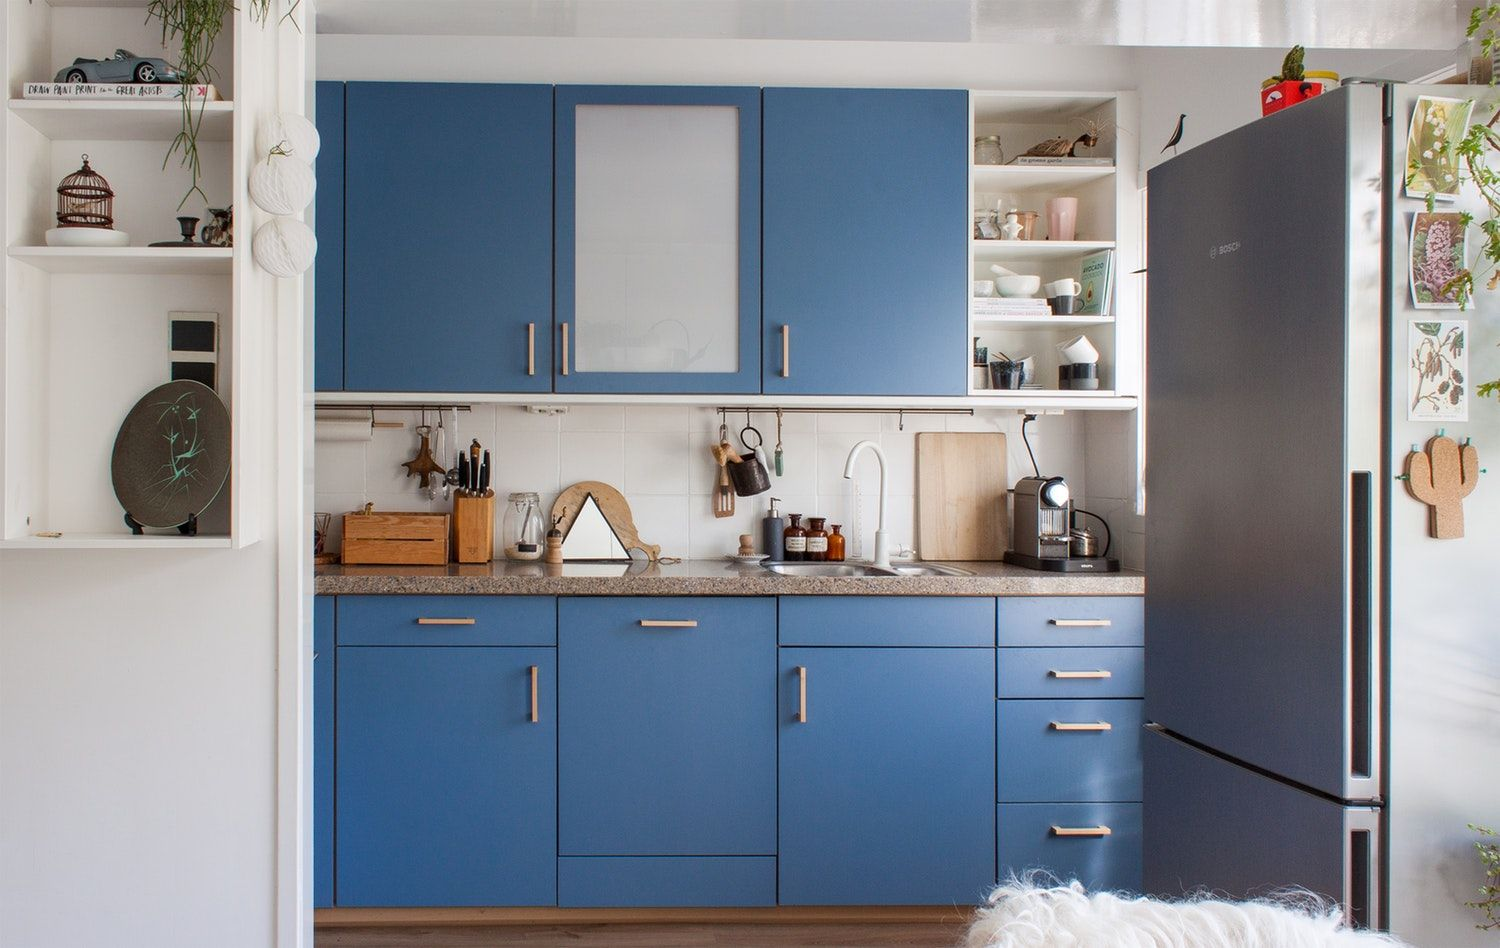 35 of the Very Best Ideas and Solutions for Your Small